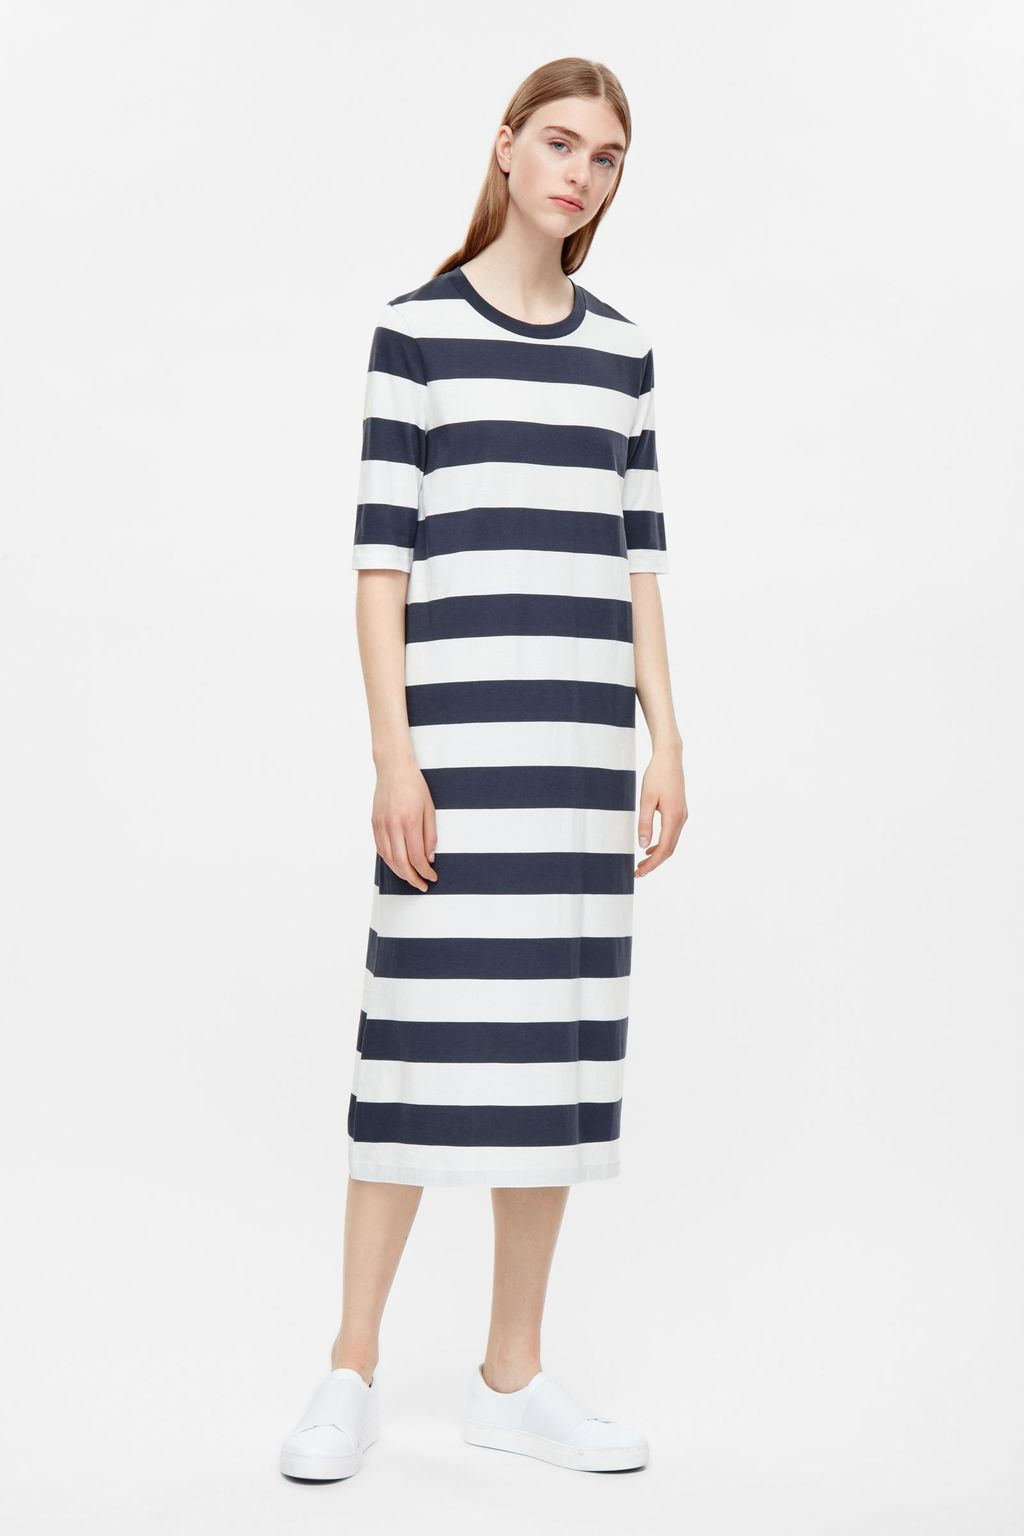 Striped Jersey Dress - style: shift; length: calf length; pattern: horizontal stripes; predominant colour: white; secondary colour: navy; occasions: casual; fit: body skimming; fibres: cotton - 100%; neckline: crew; sleeve length: half sleeve; sleeve style: standard; pattern type: fabric; texture group: jersey - stretchy/drapey; multicoloured: multicoloured; season: s/s 2016; wardrobe: basic